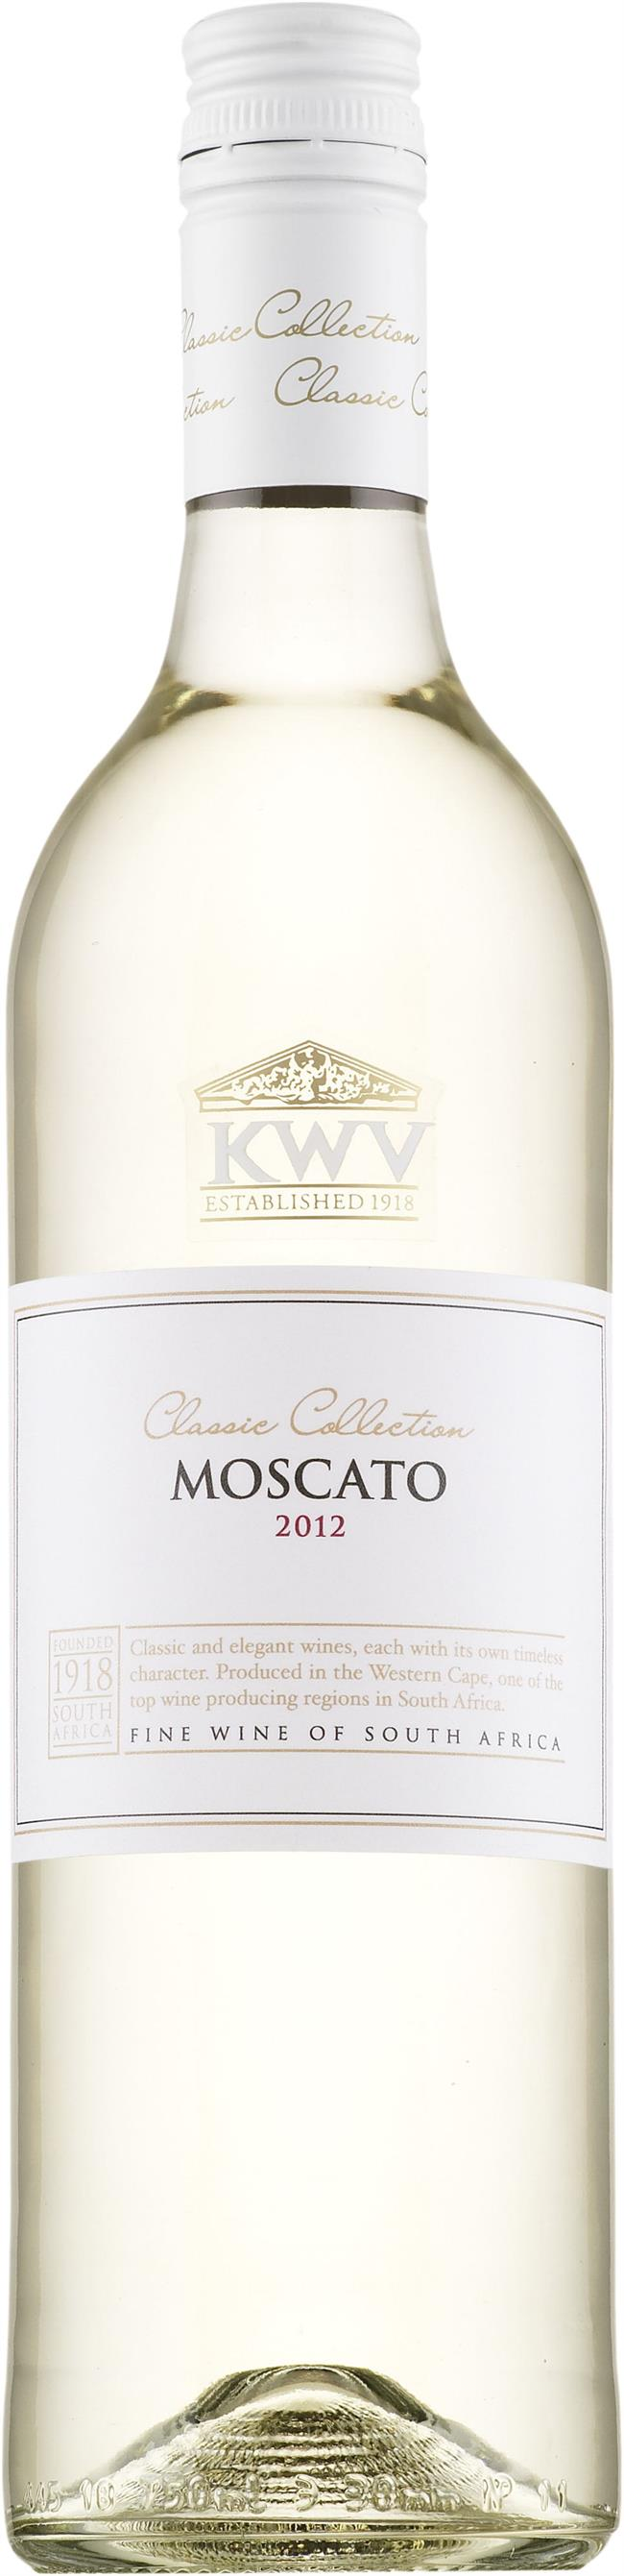 KWV Moscato 13 _ 14 2013_2014 75cl